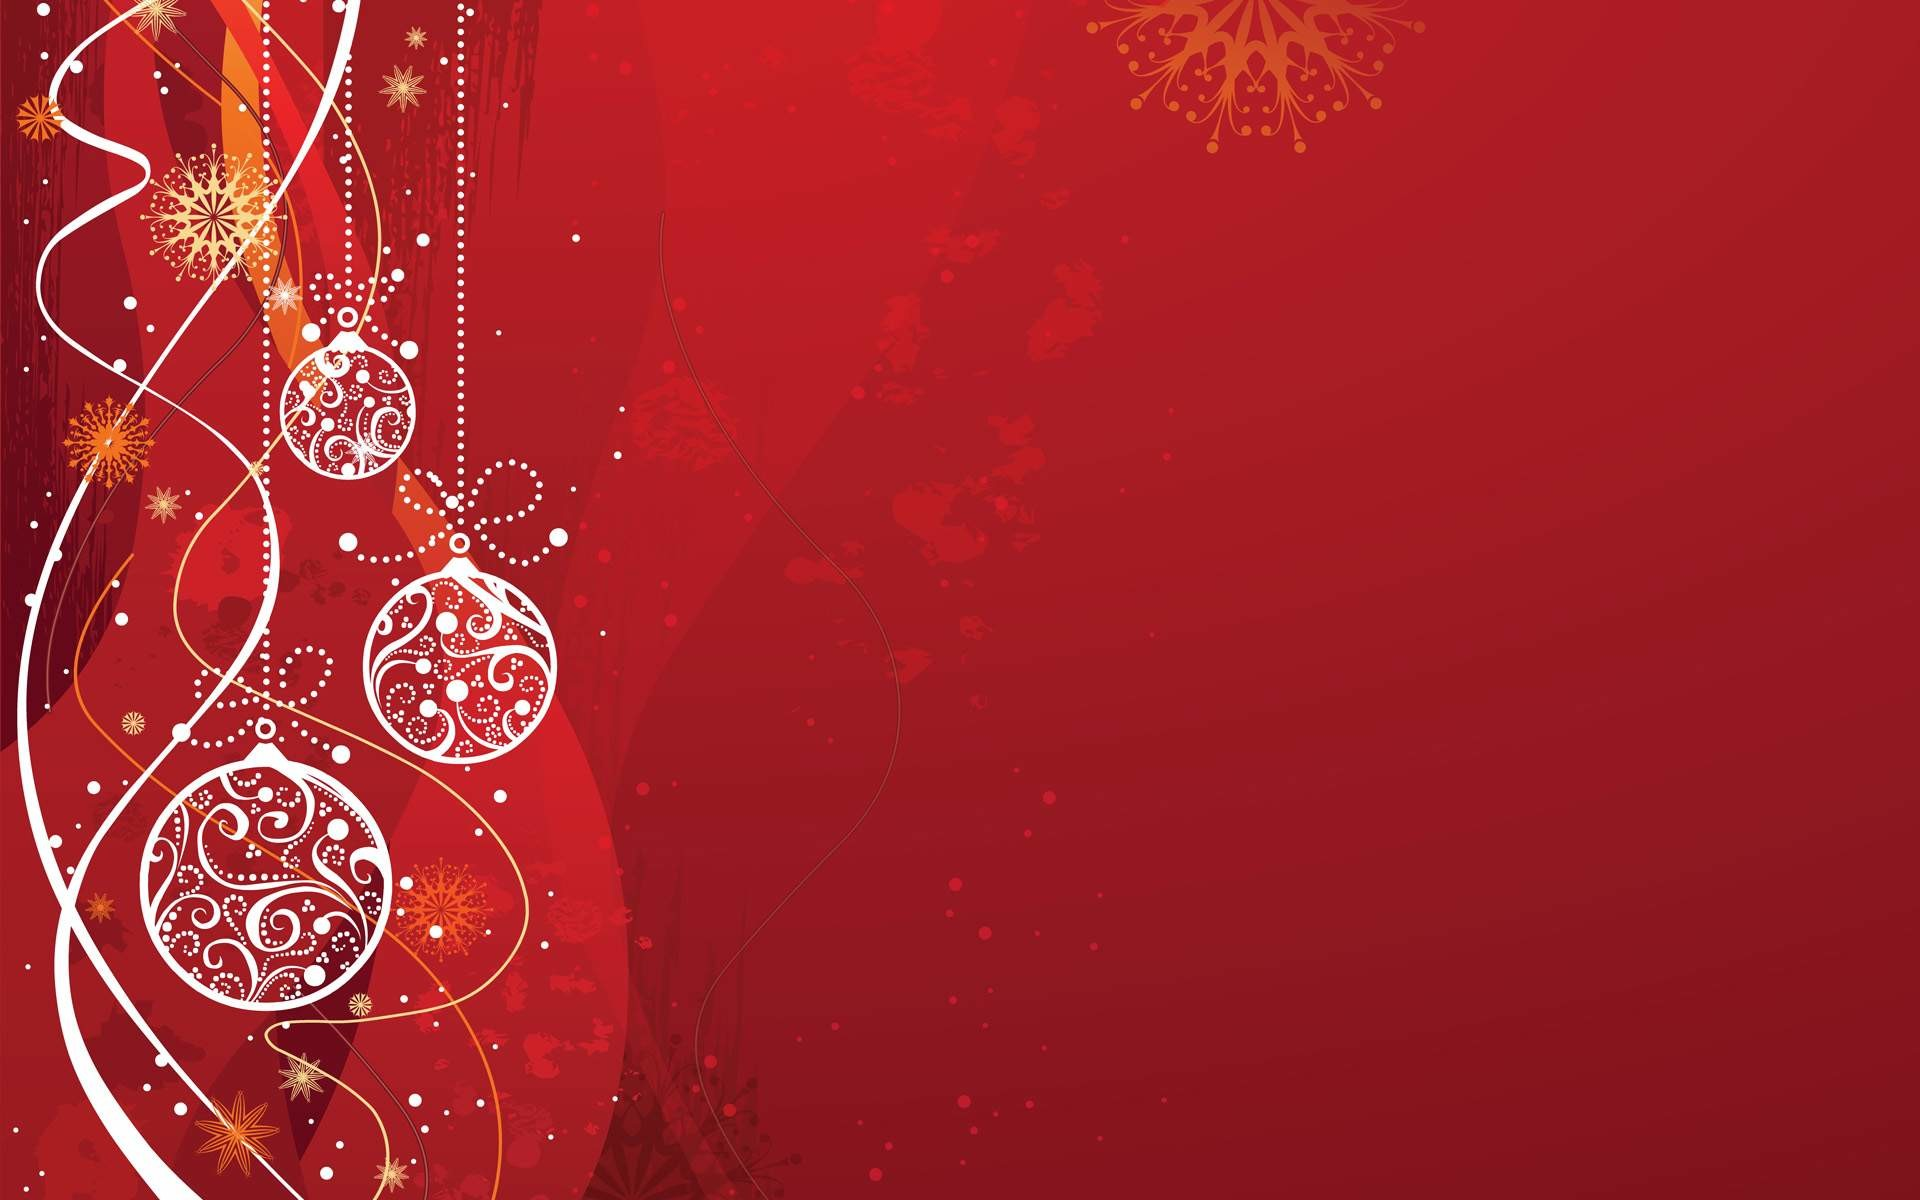 1920x1200 free christmas background clipart | christmas wallpapers for vista ,  wallpaper, desktop, backgrounds .